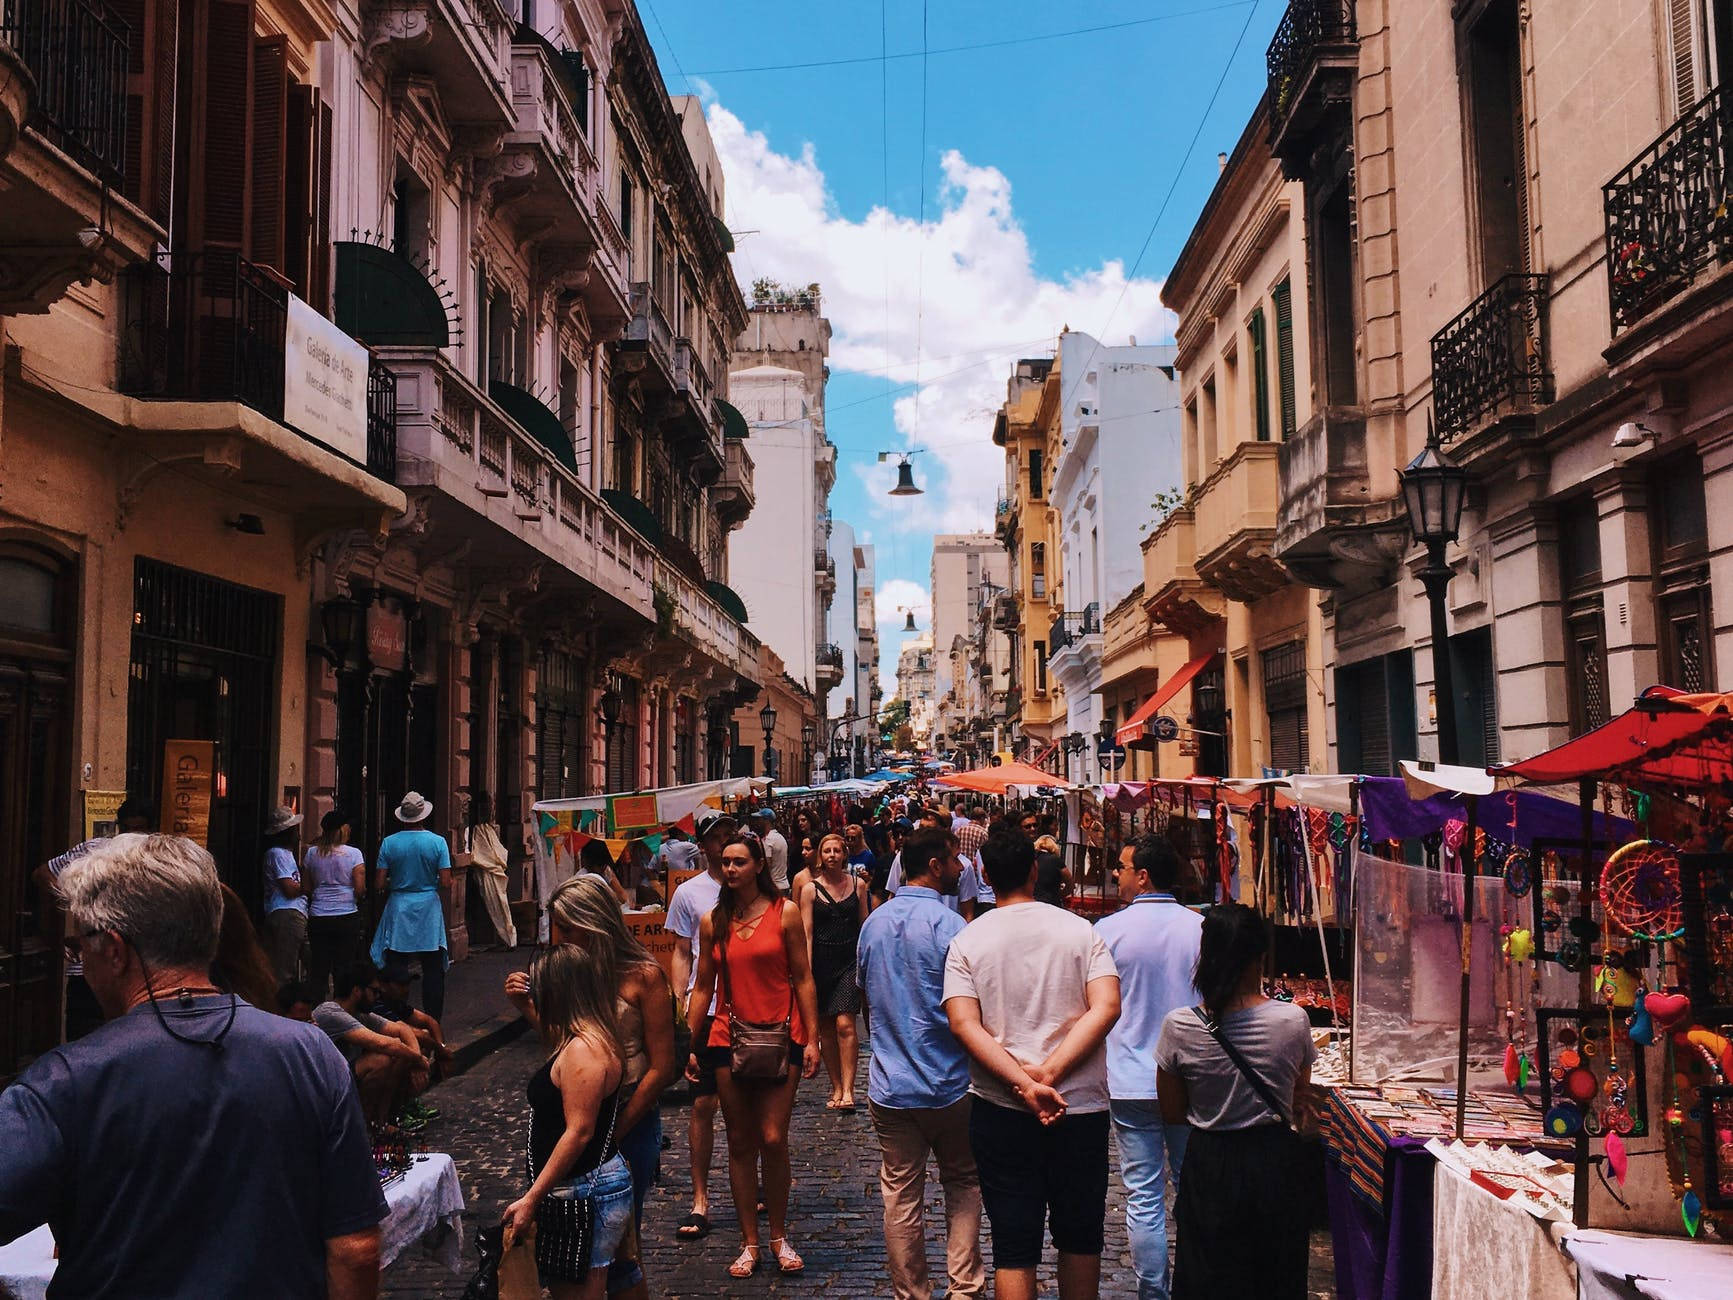 people standing on road beside market and high rise buildings - tips for planning a trip to Buenos Aires, Argentina, from Wanderful.